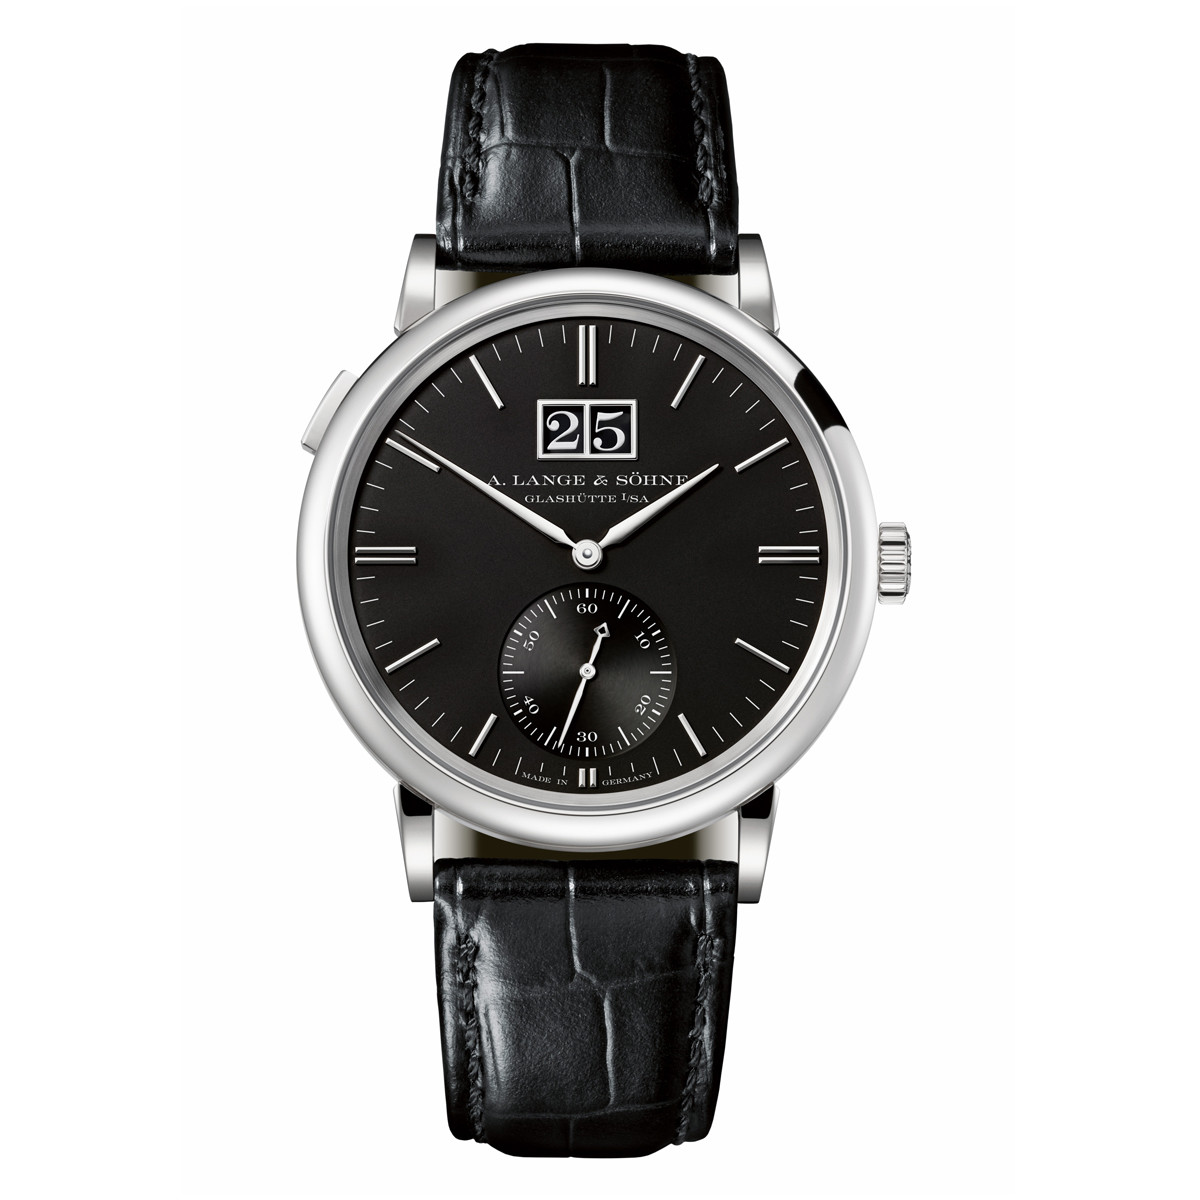 Saxonia Outsize Date White Gold (381.029)